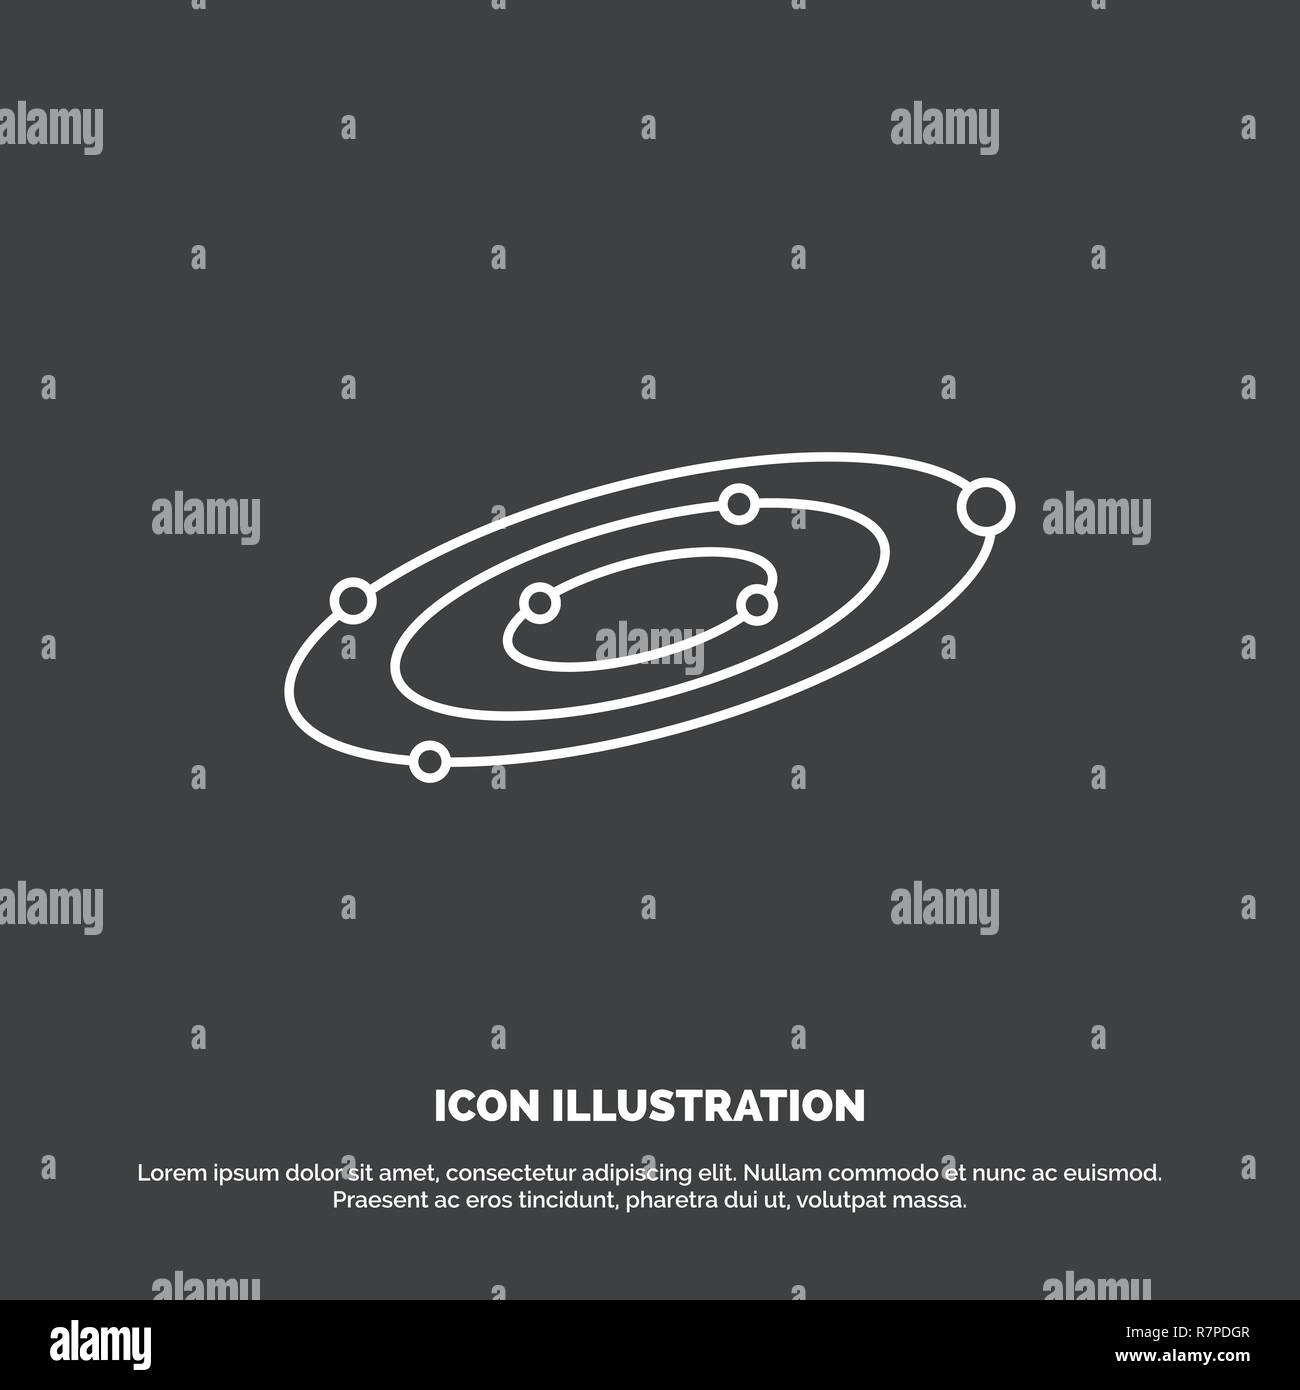 Symbol Of Venus Stock Vector Images - Page 2 - Alamy